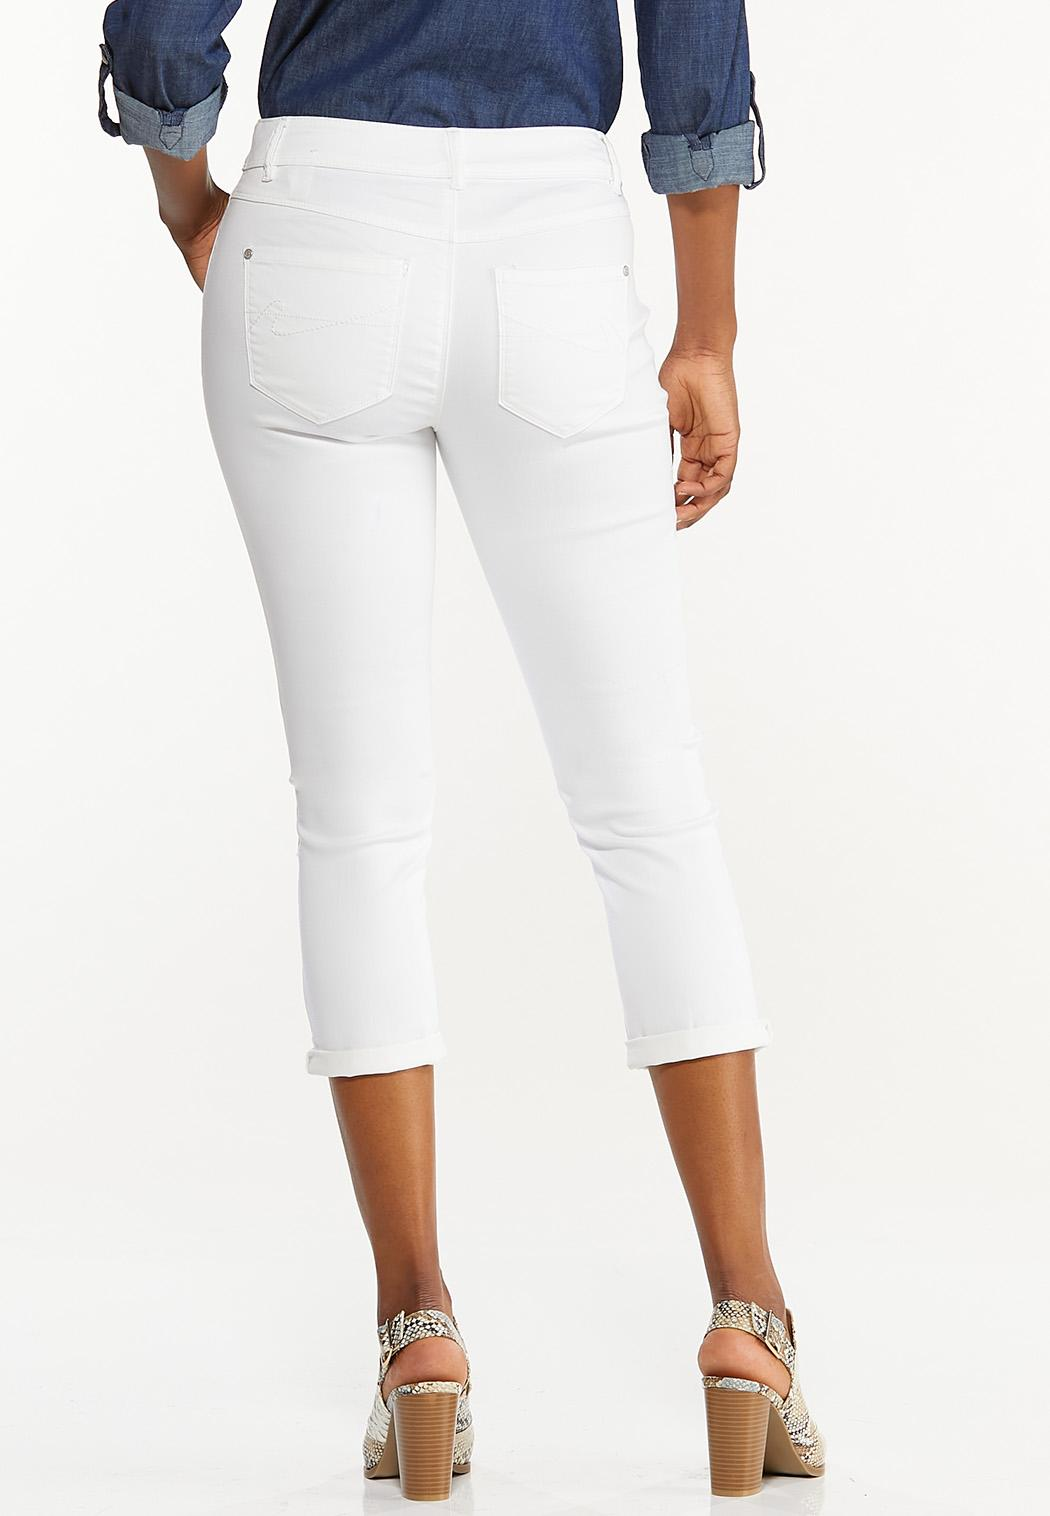 Cropped White Jeans (Item #44476675)